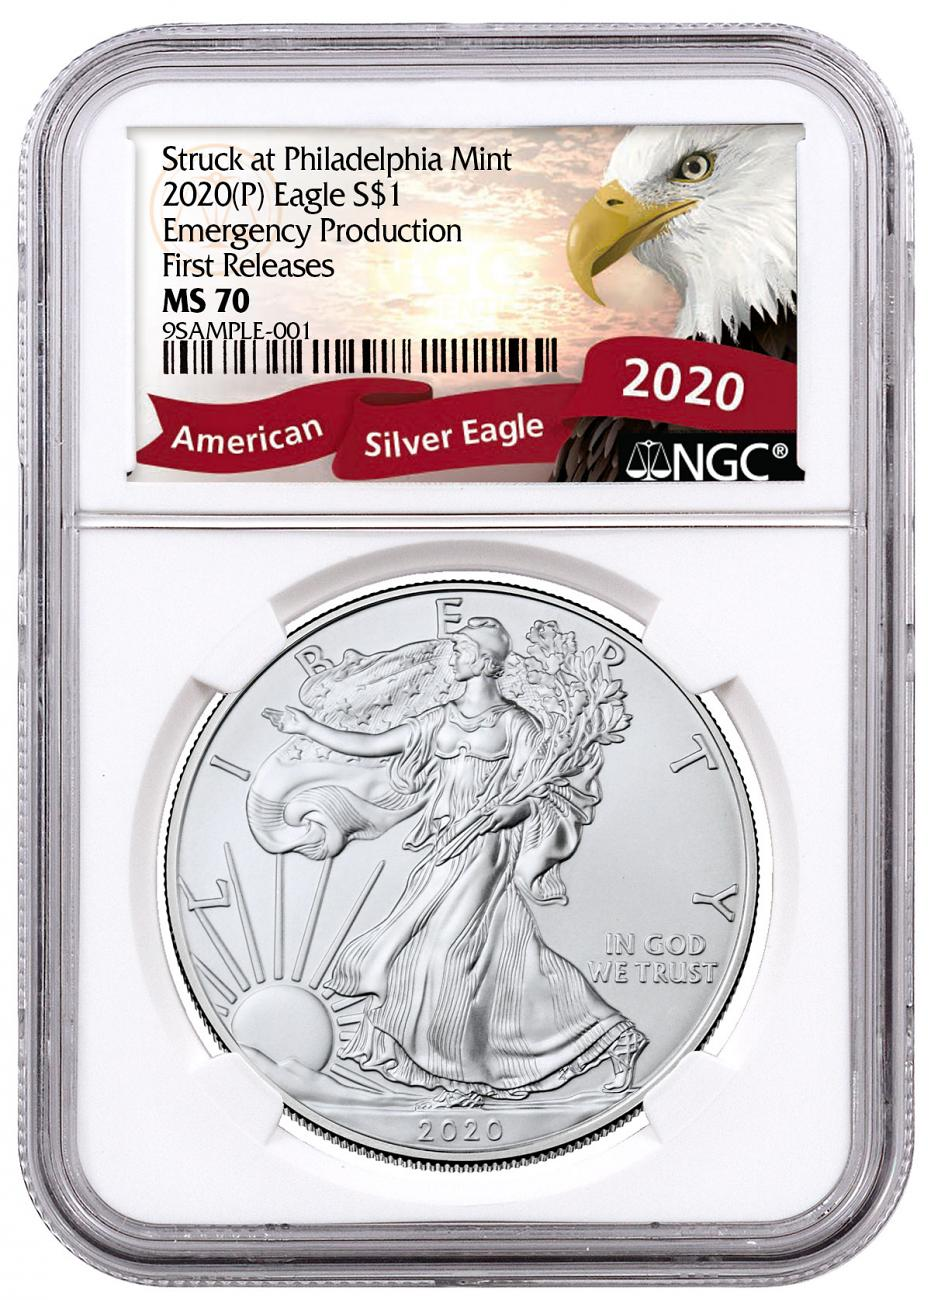 Emergency Production (P) Silver Eagles